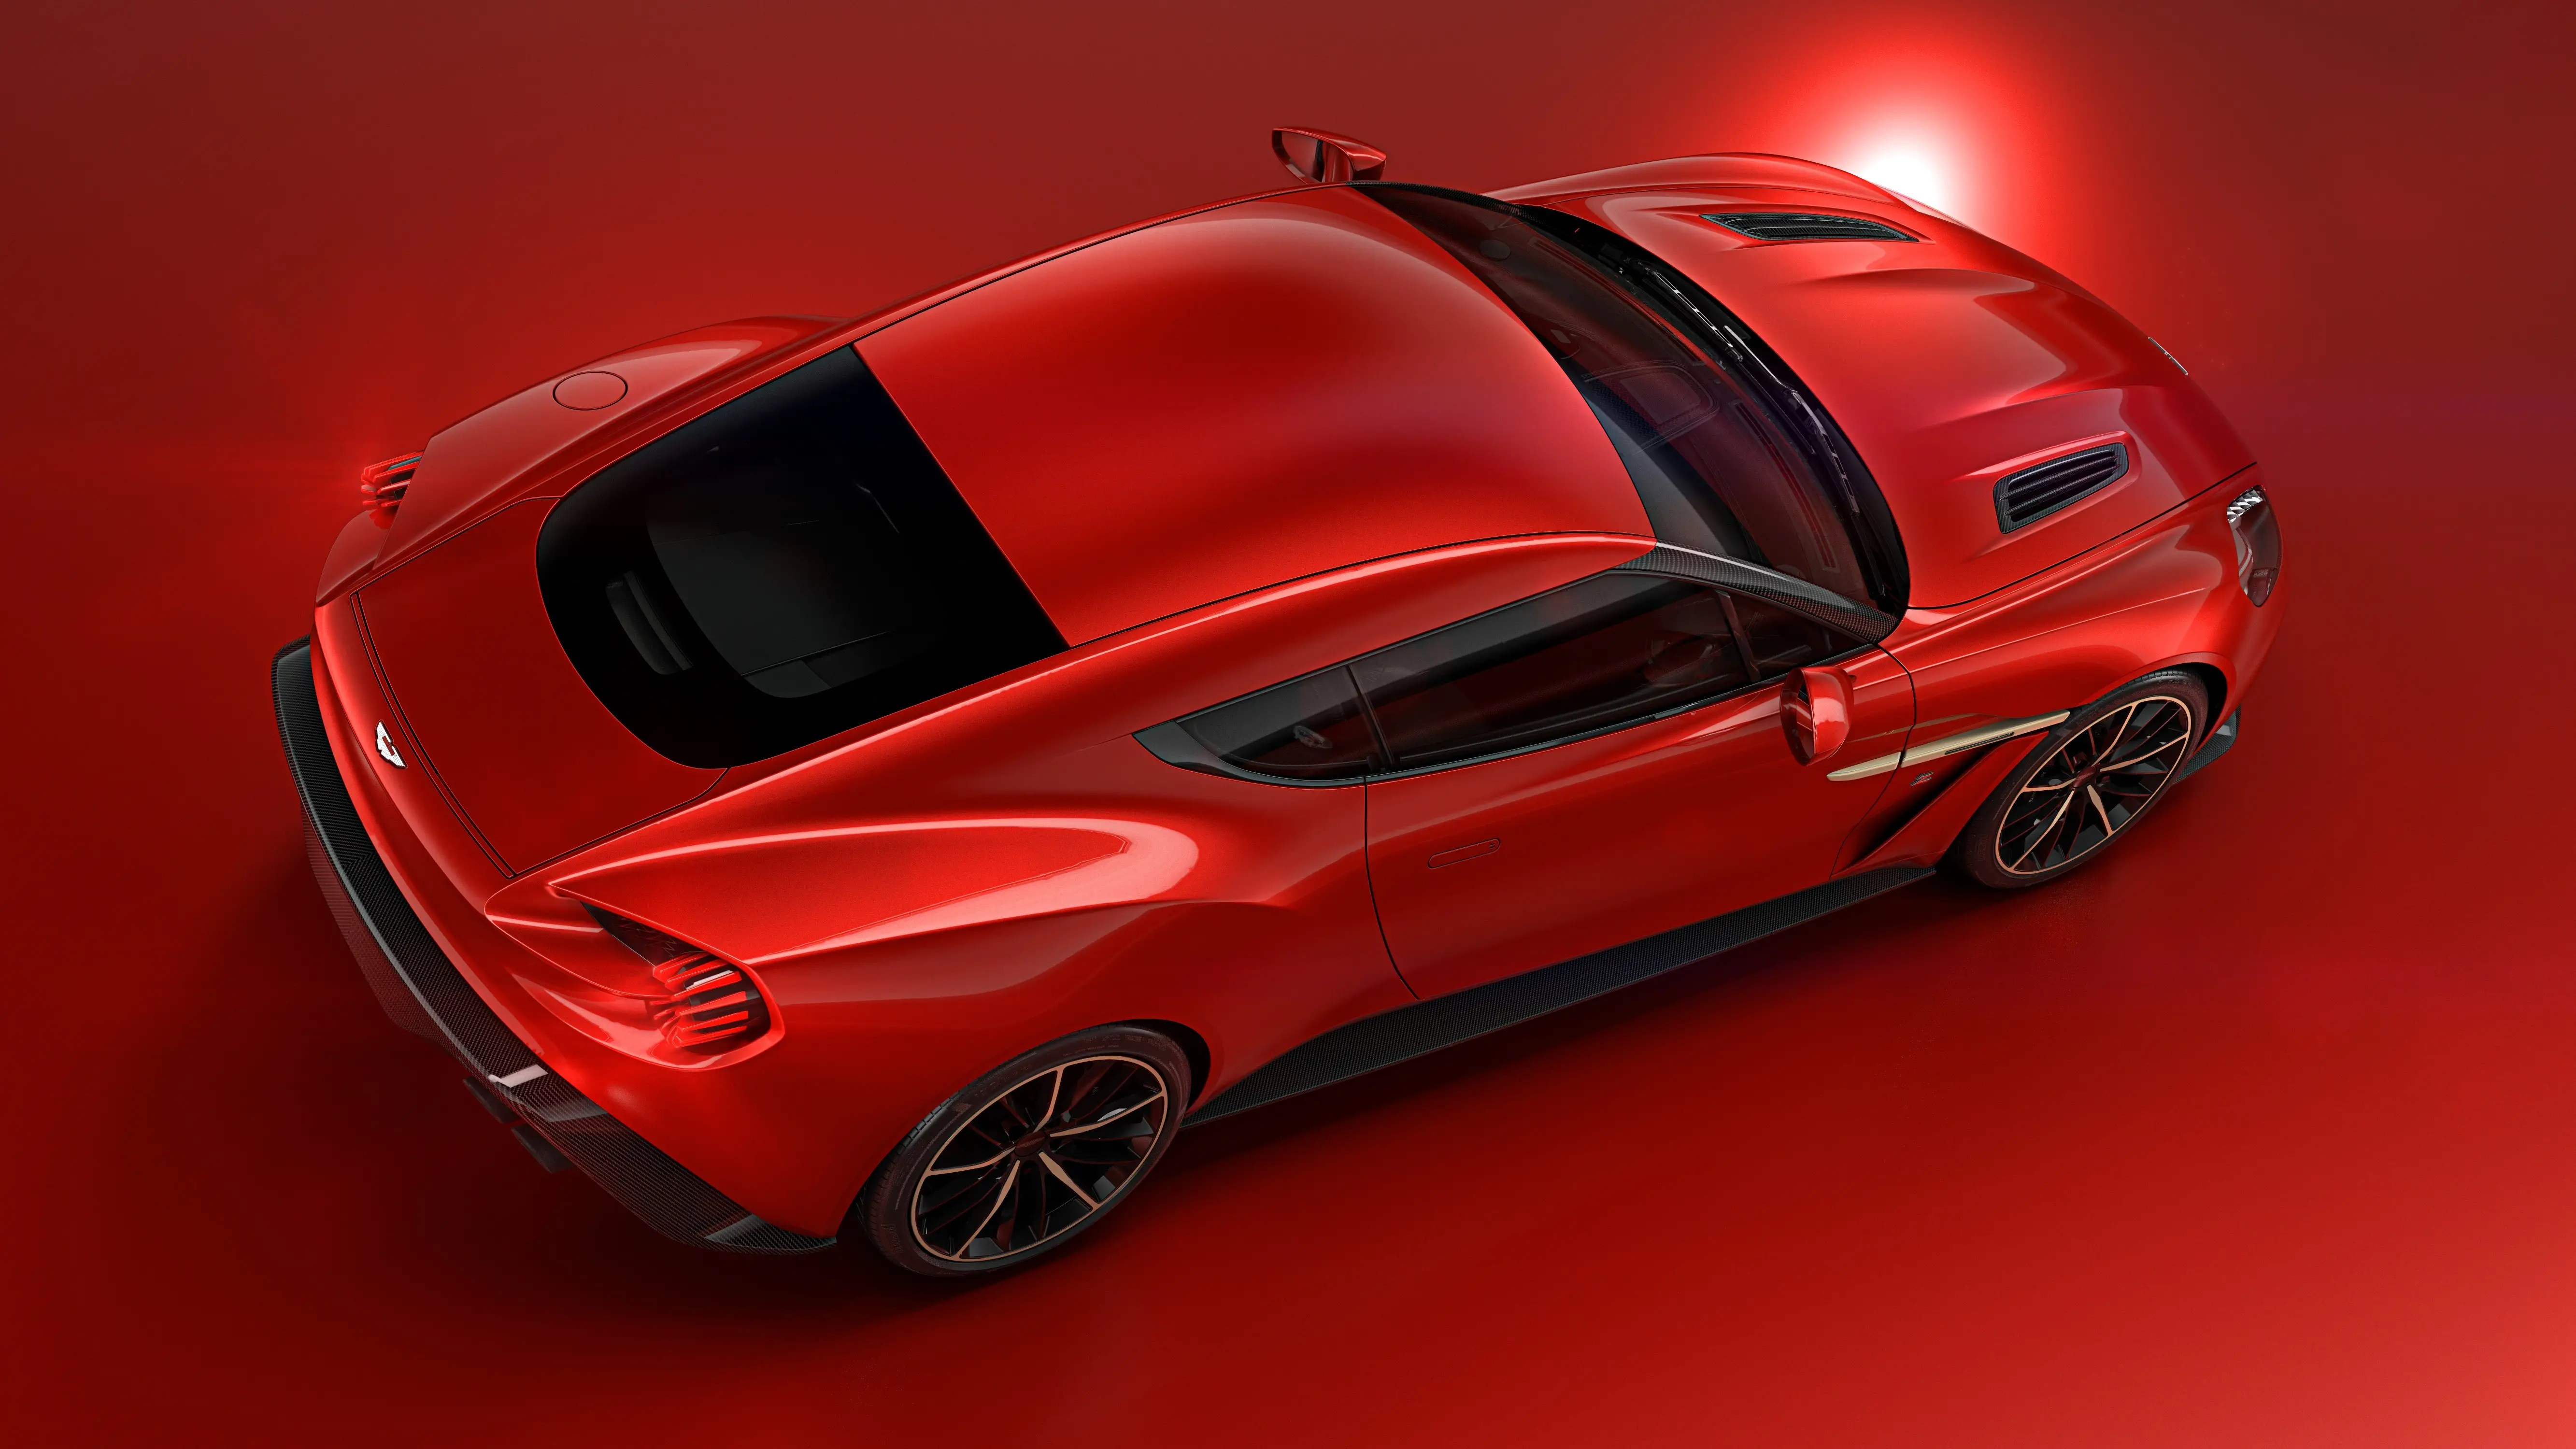 Aston Martin made the car with Italian auto design company Zagato. The two have worked together since 1960.